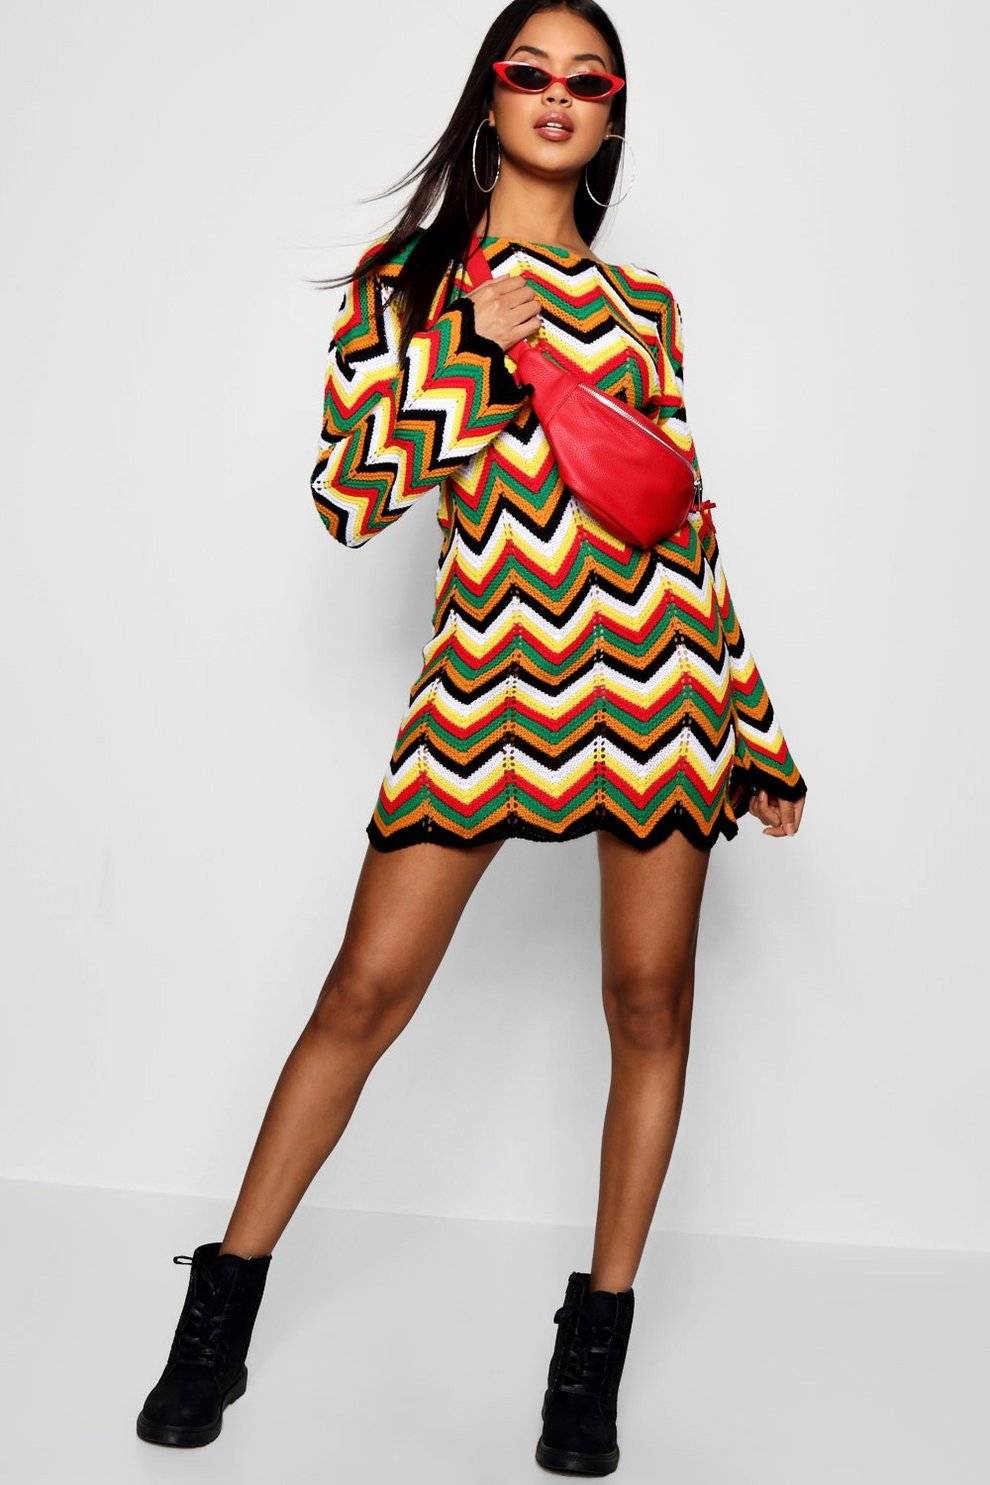 Boohoo Zig Zag Crochet Scoop Back Dress Free Shipping Lowest Price Collections 2018 For Sale cPeTE86UU8